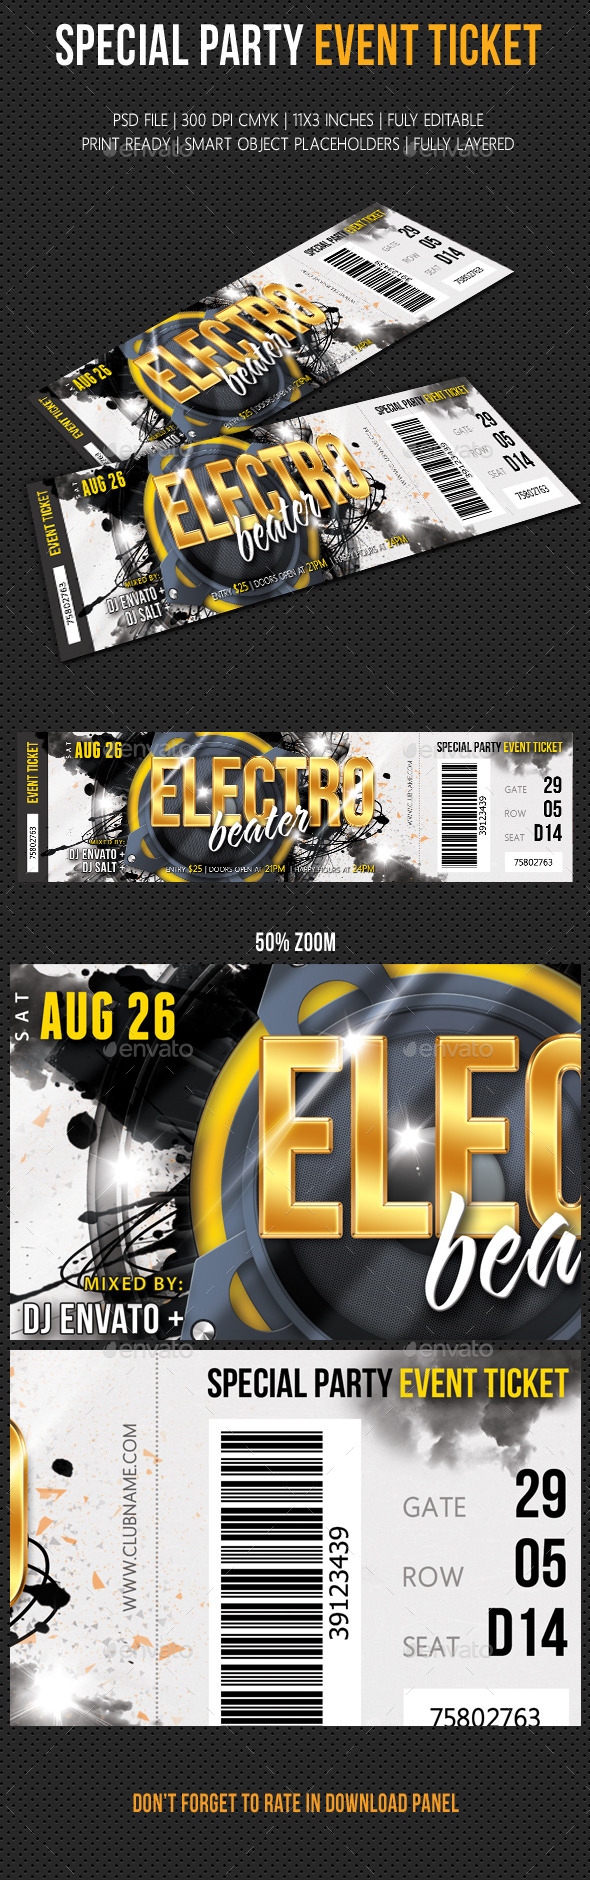 Special Party Event Ticket V03 Party Event Ticket Design Event Ticket Template